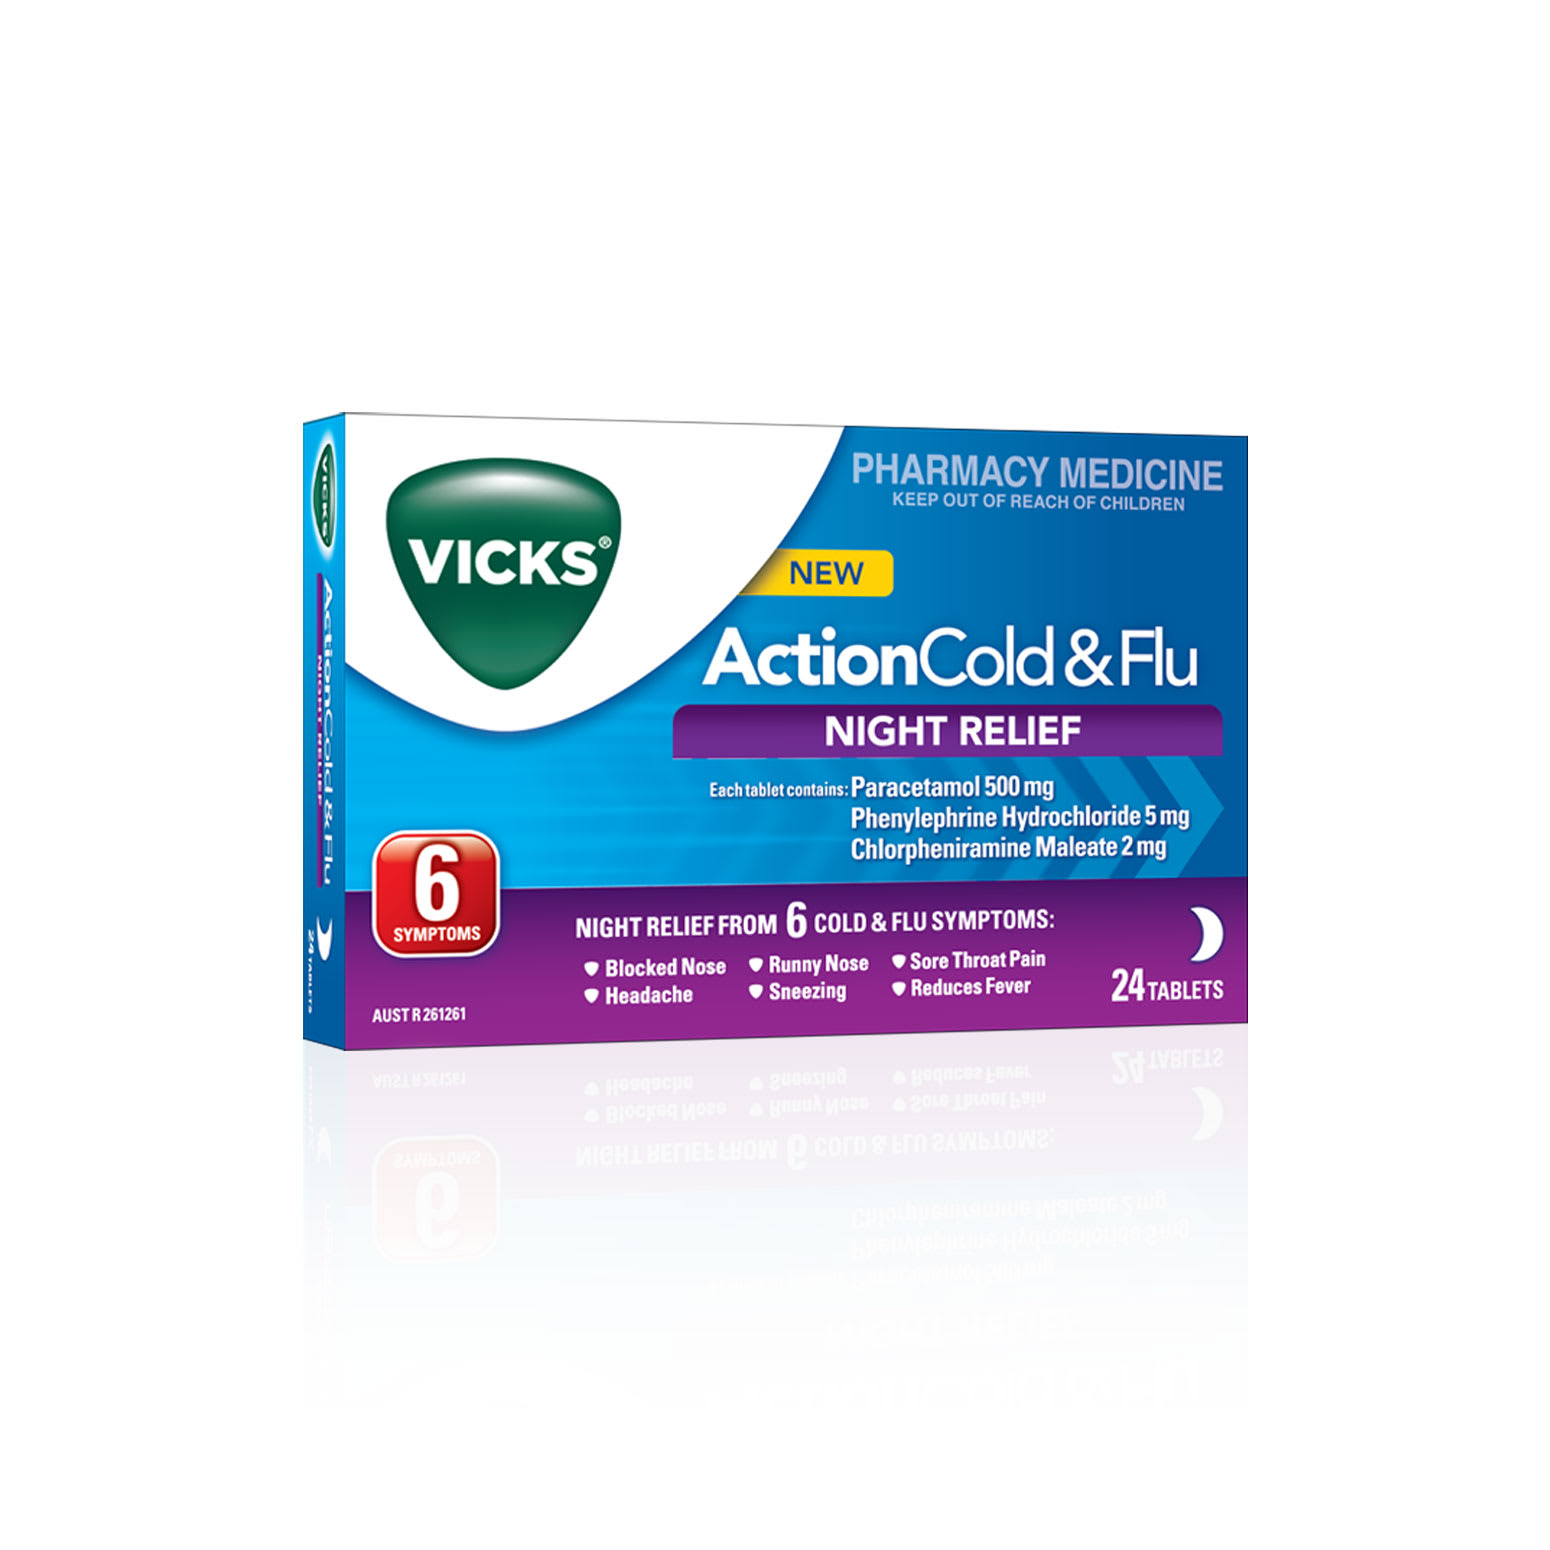 Vicks Action Night Relief